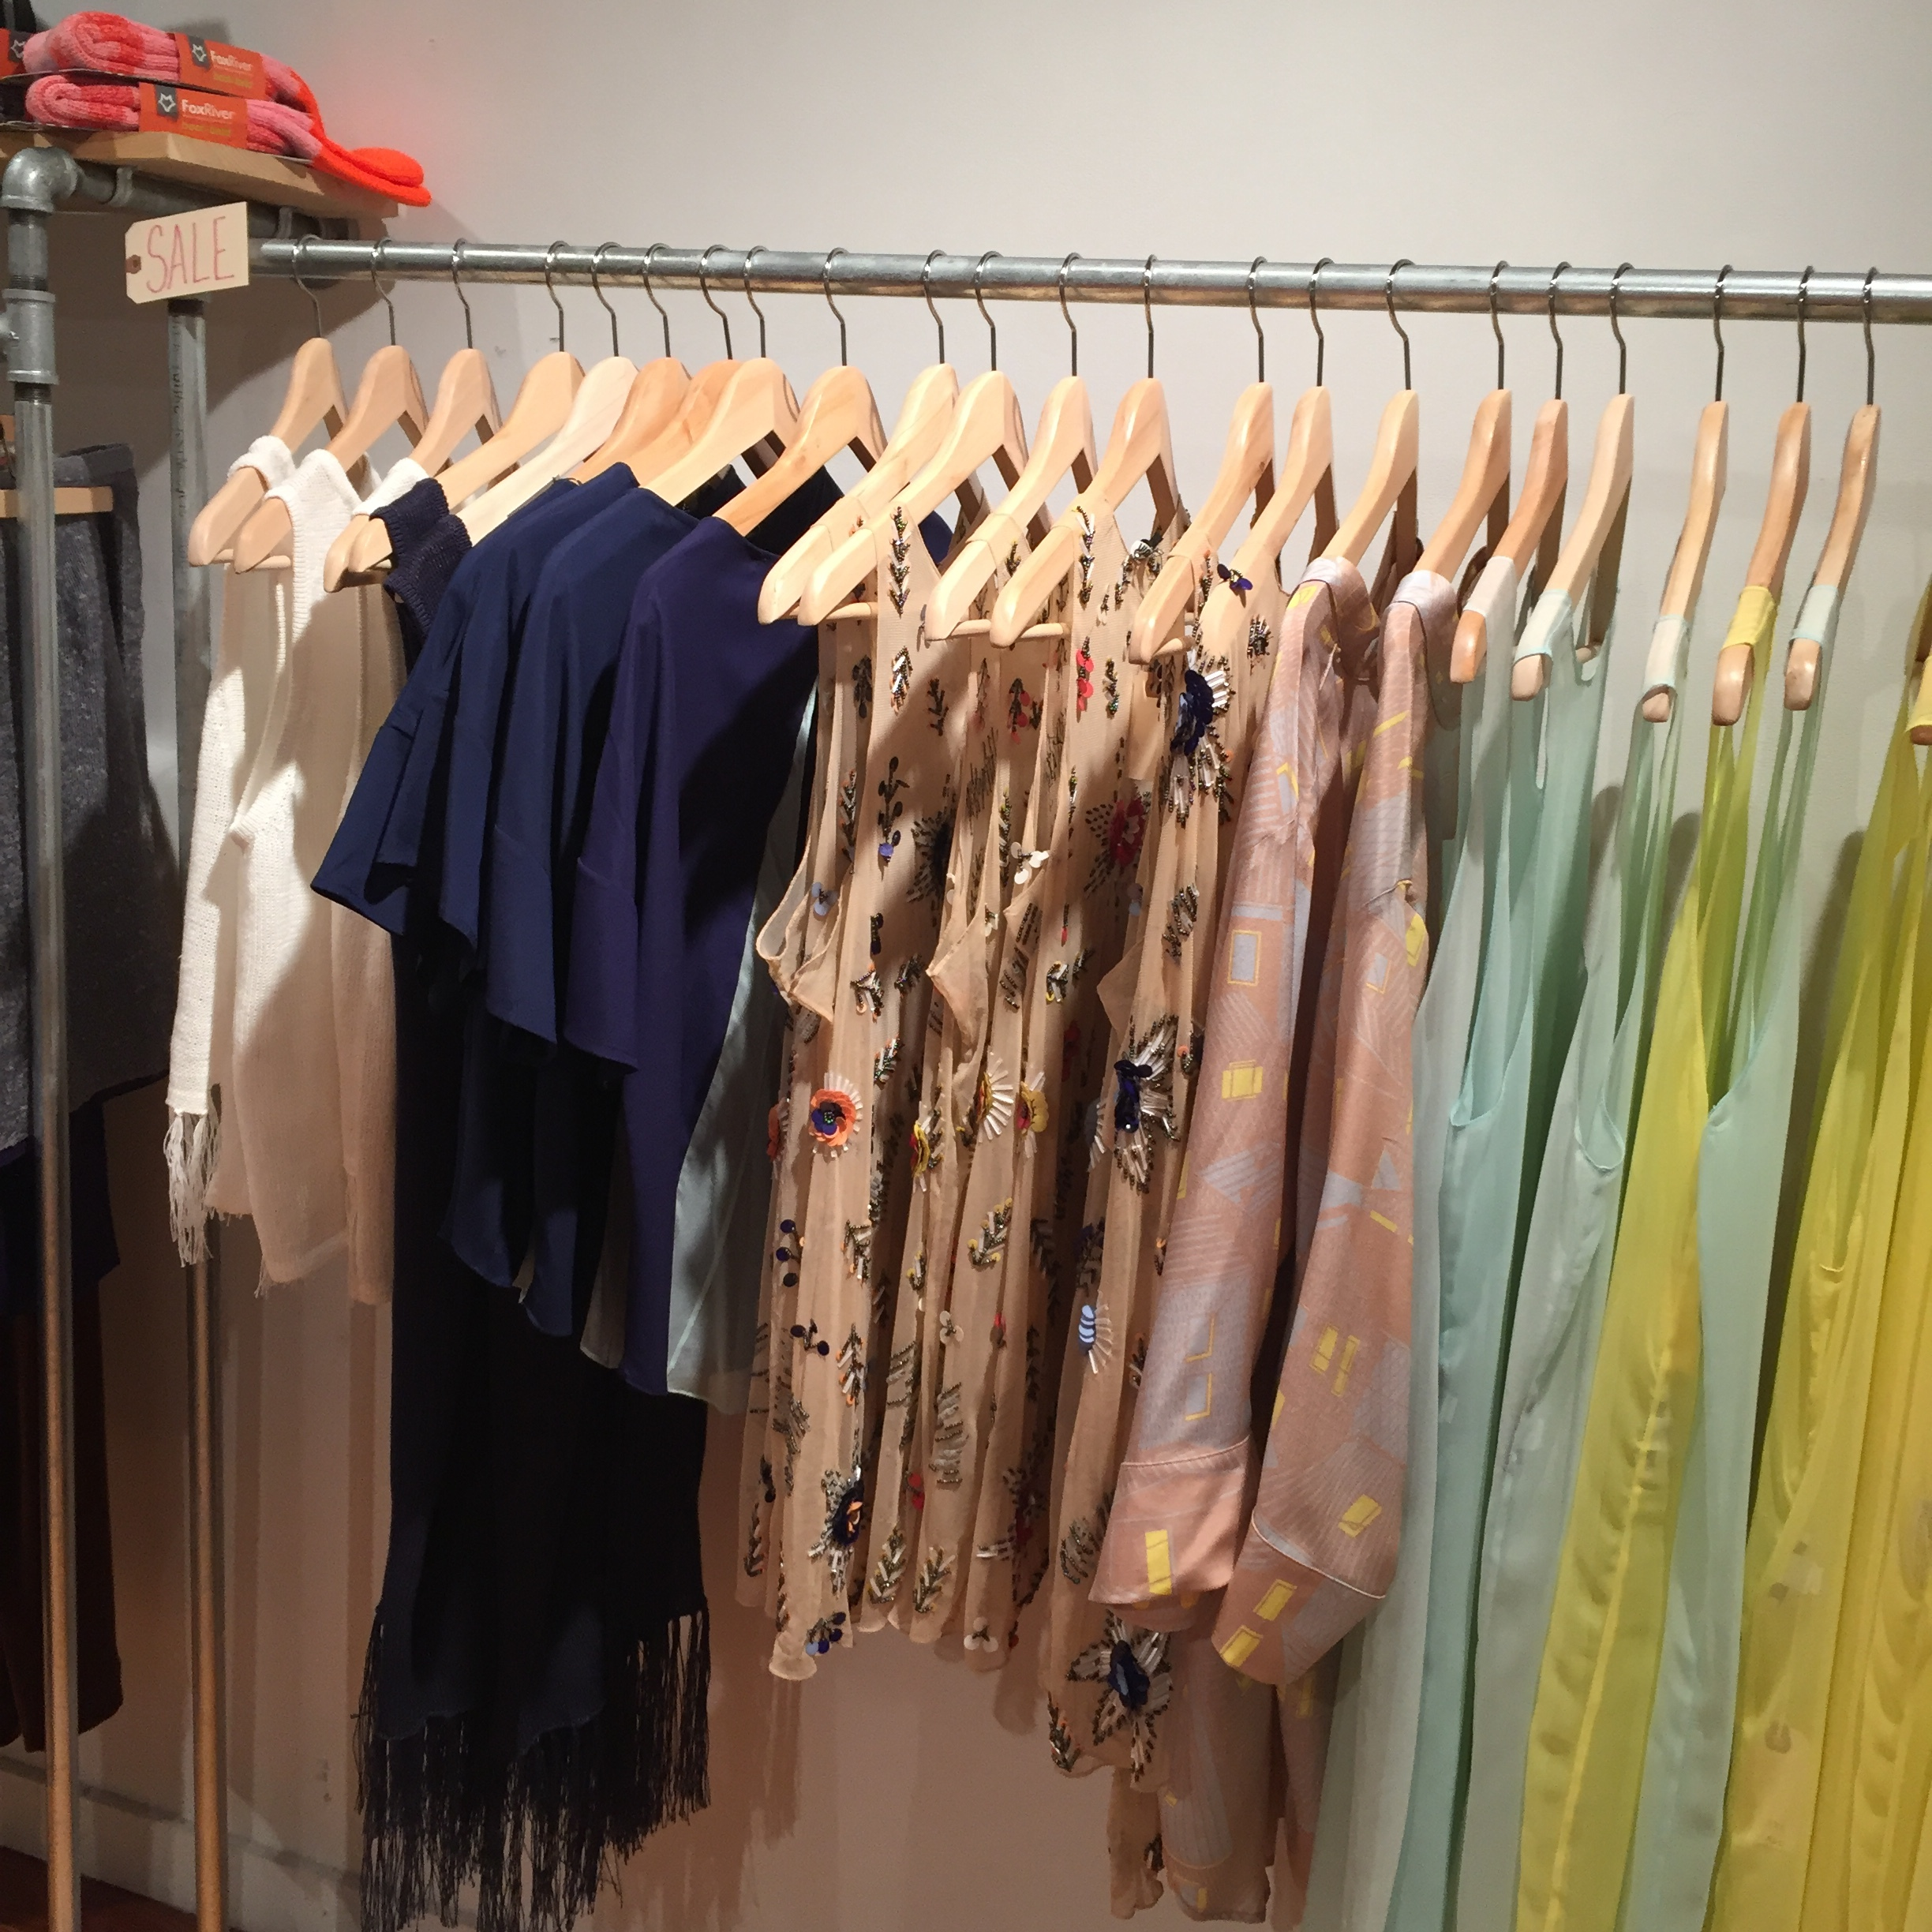 Sale rack at Reservoir and Wood